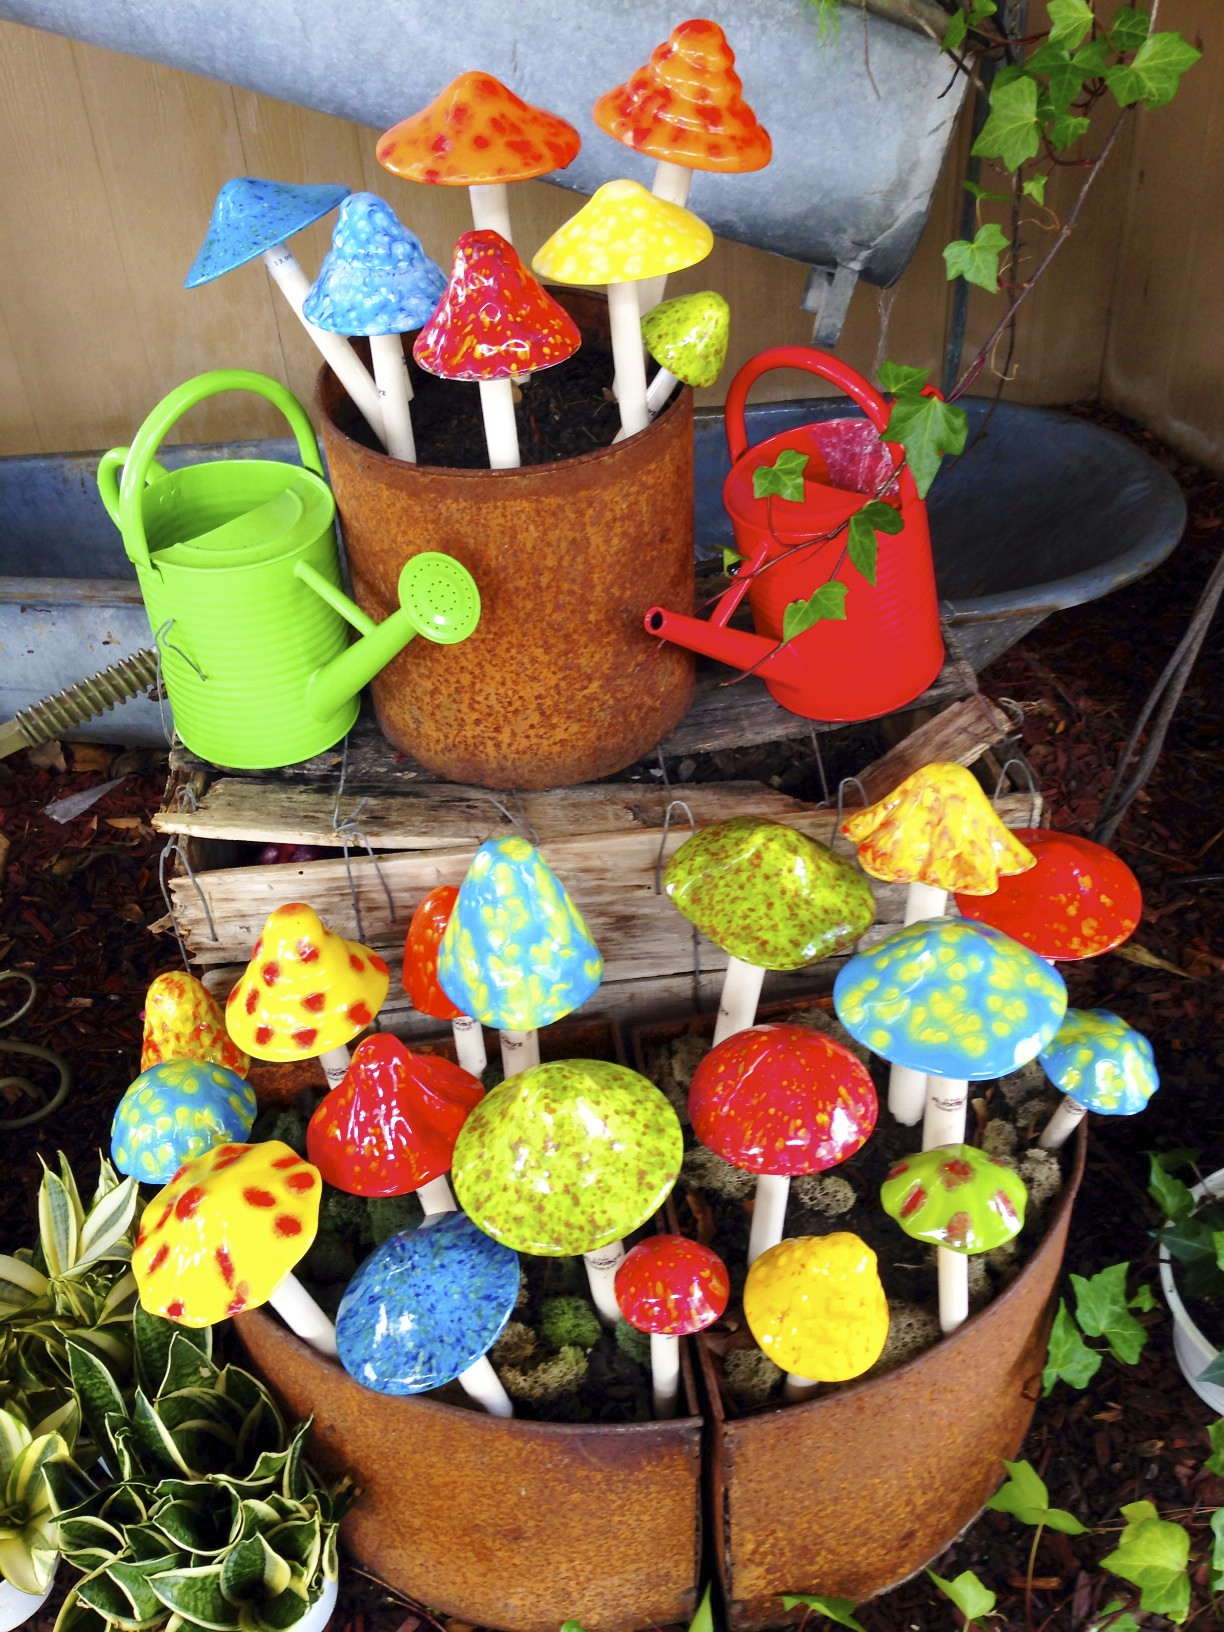 watering cans and mushrooms